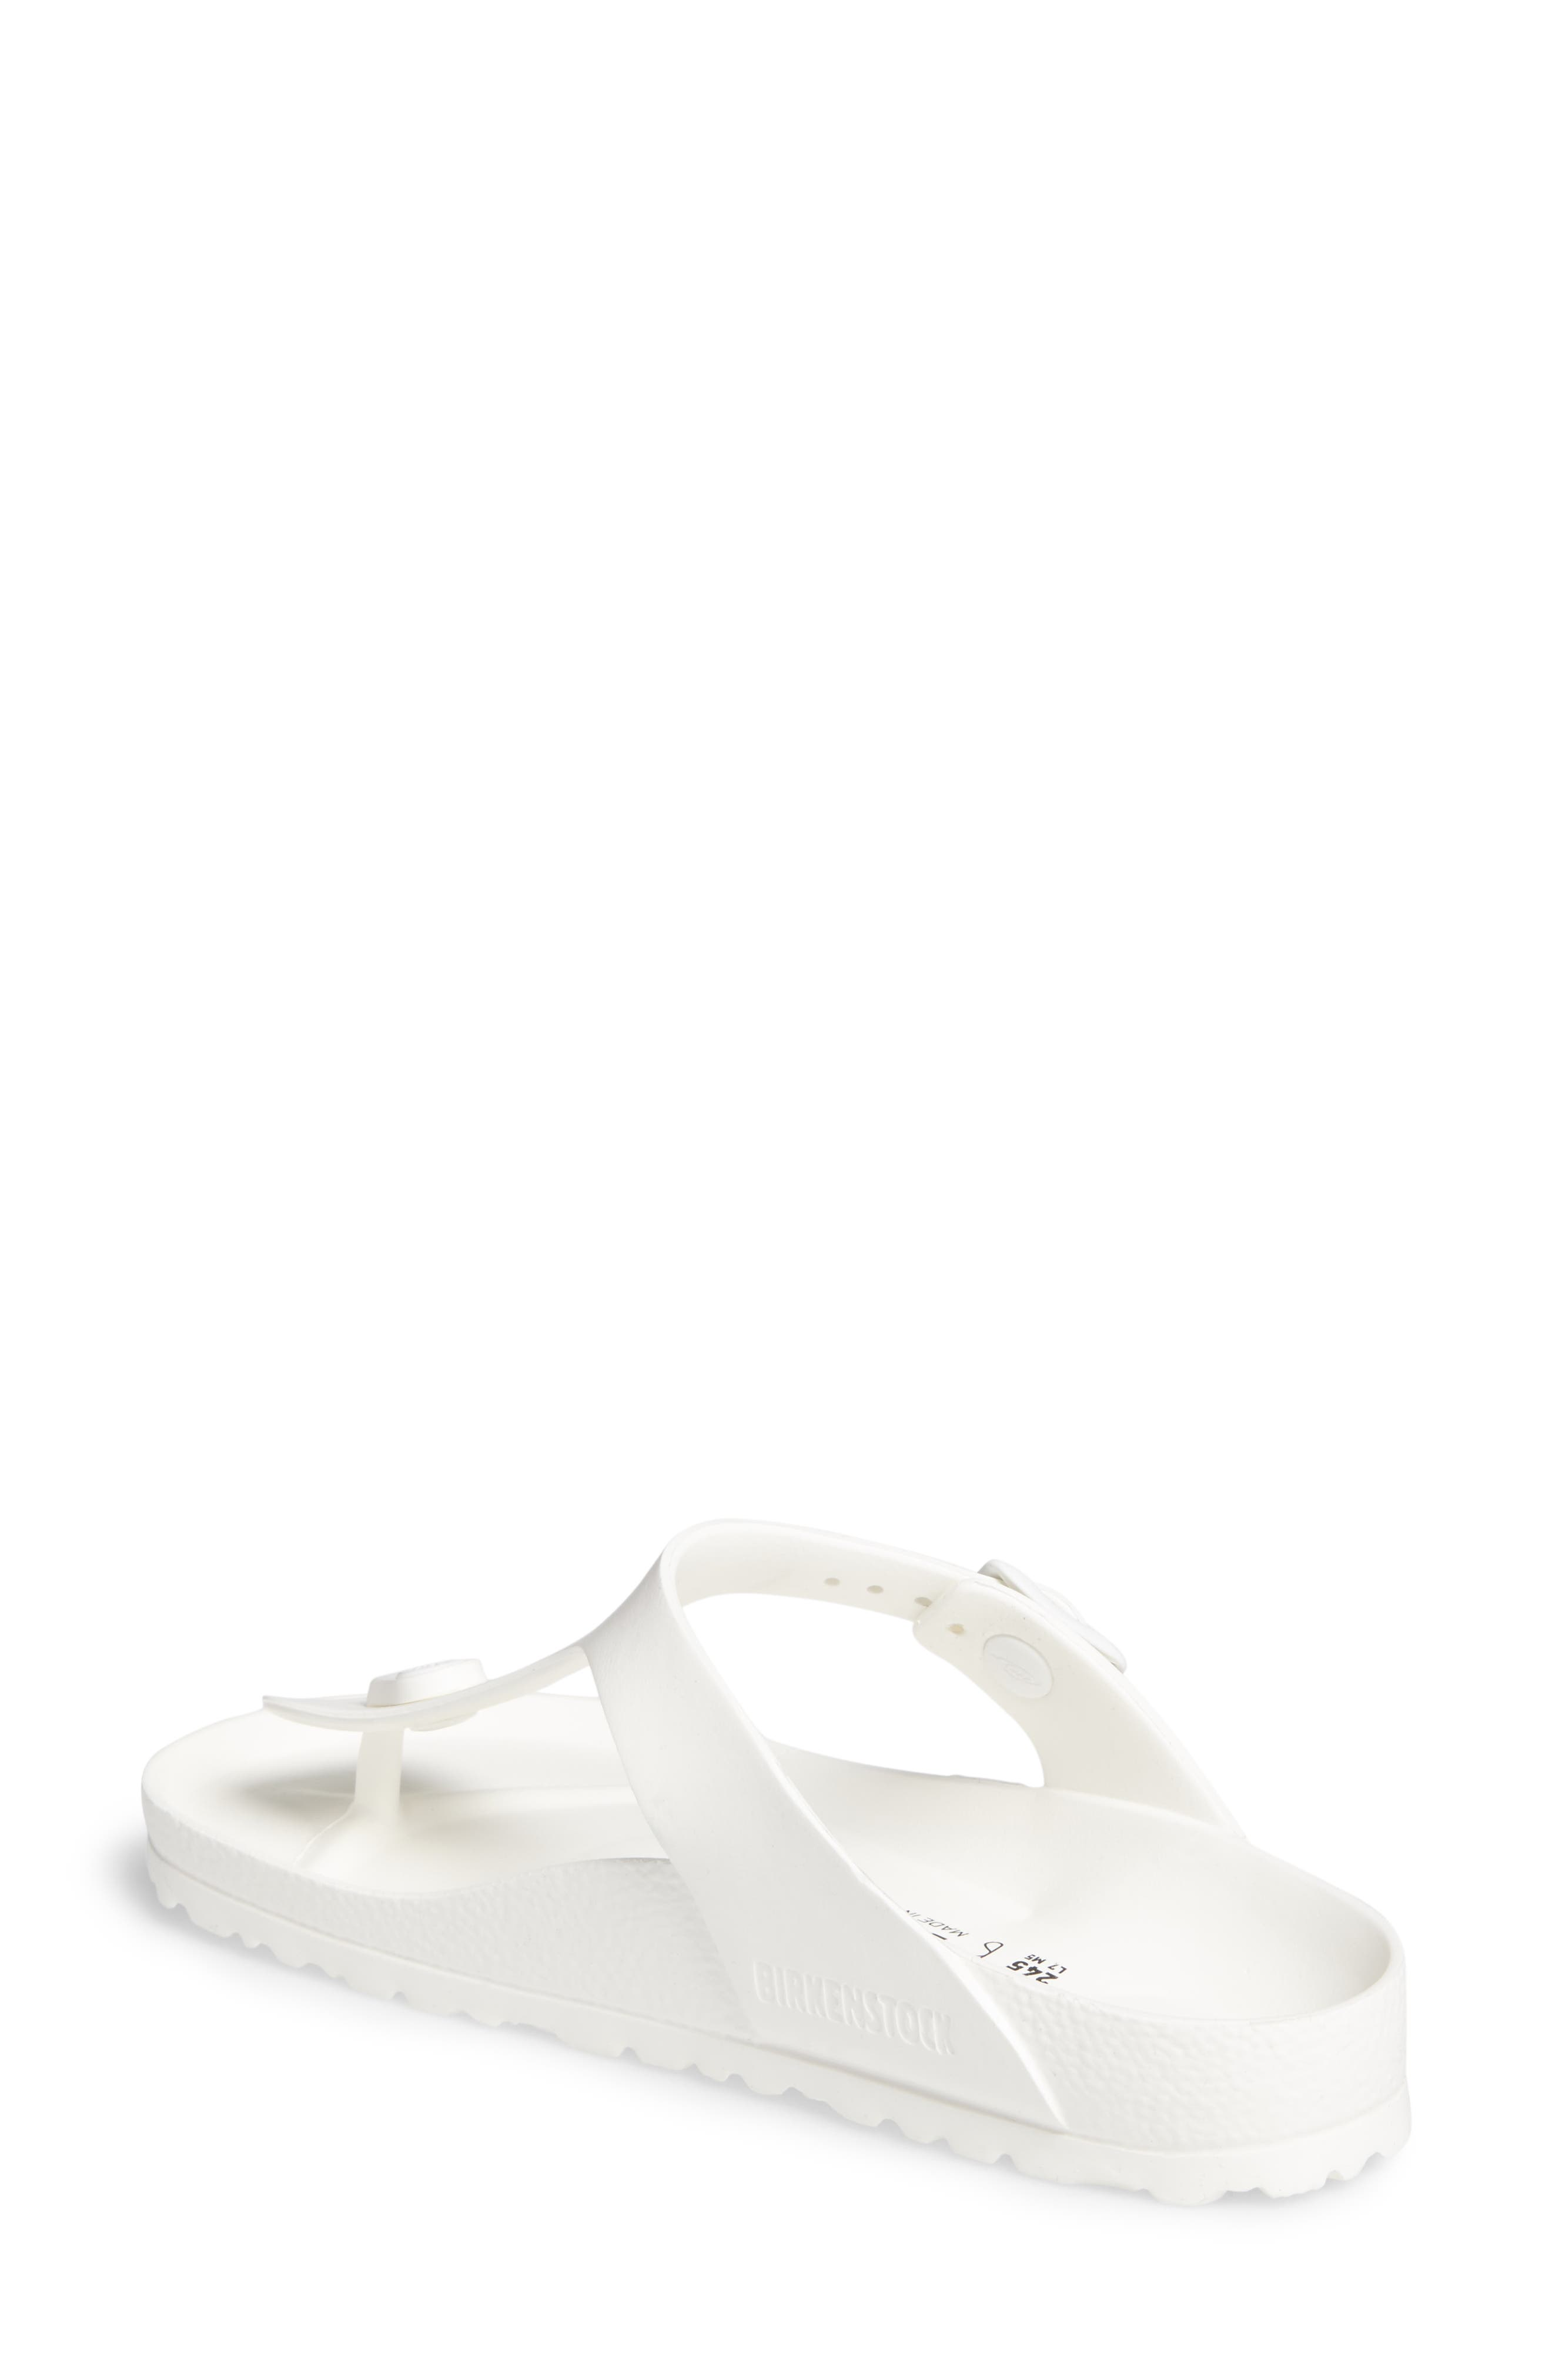 Essentials - Gizeh Flip Flop,                             Alternate thumbnail 2, color,                             WHITE